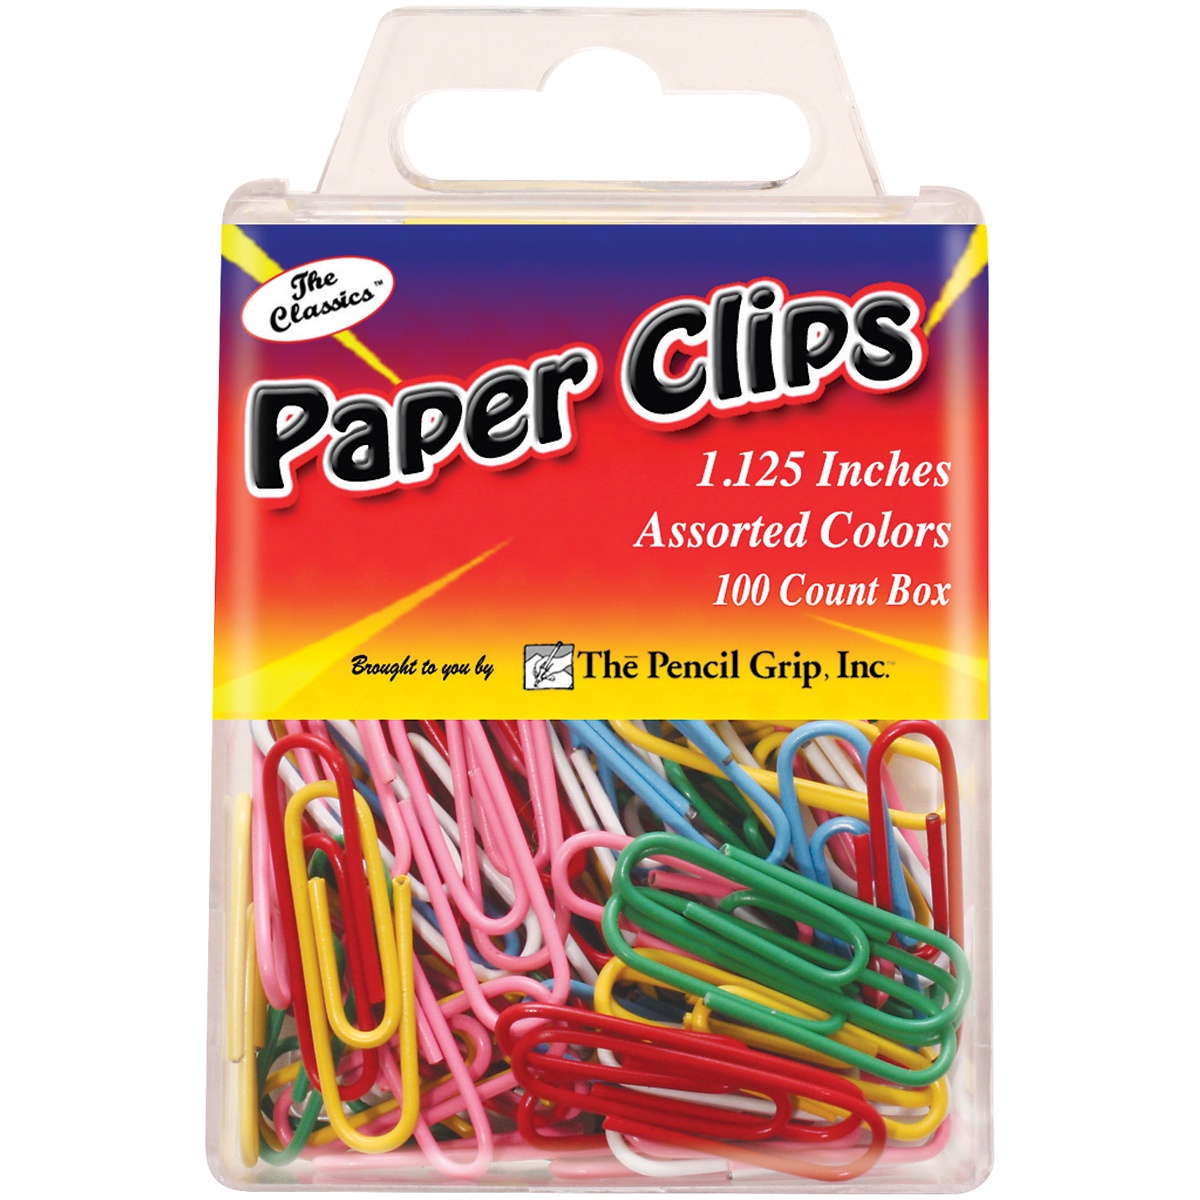 X TPG 223 PAPER CLIPS